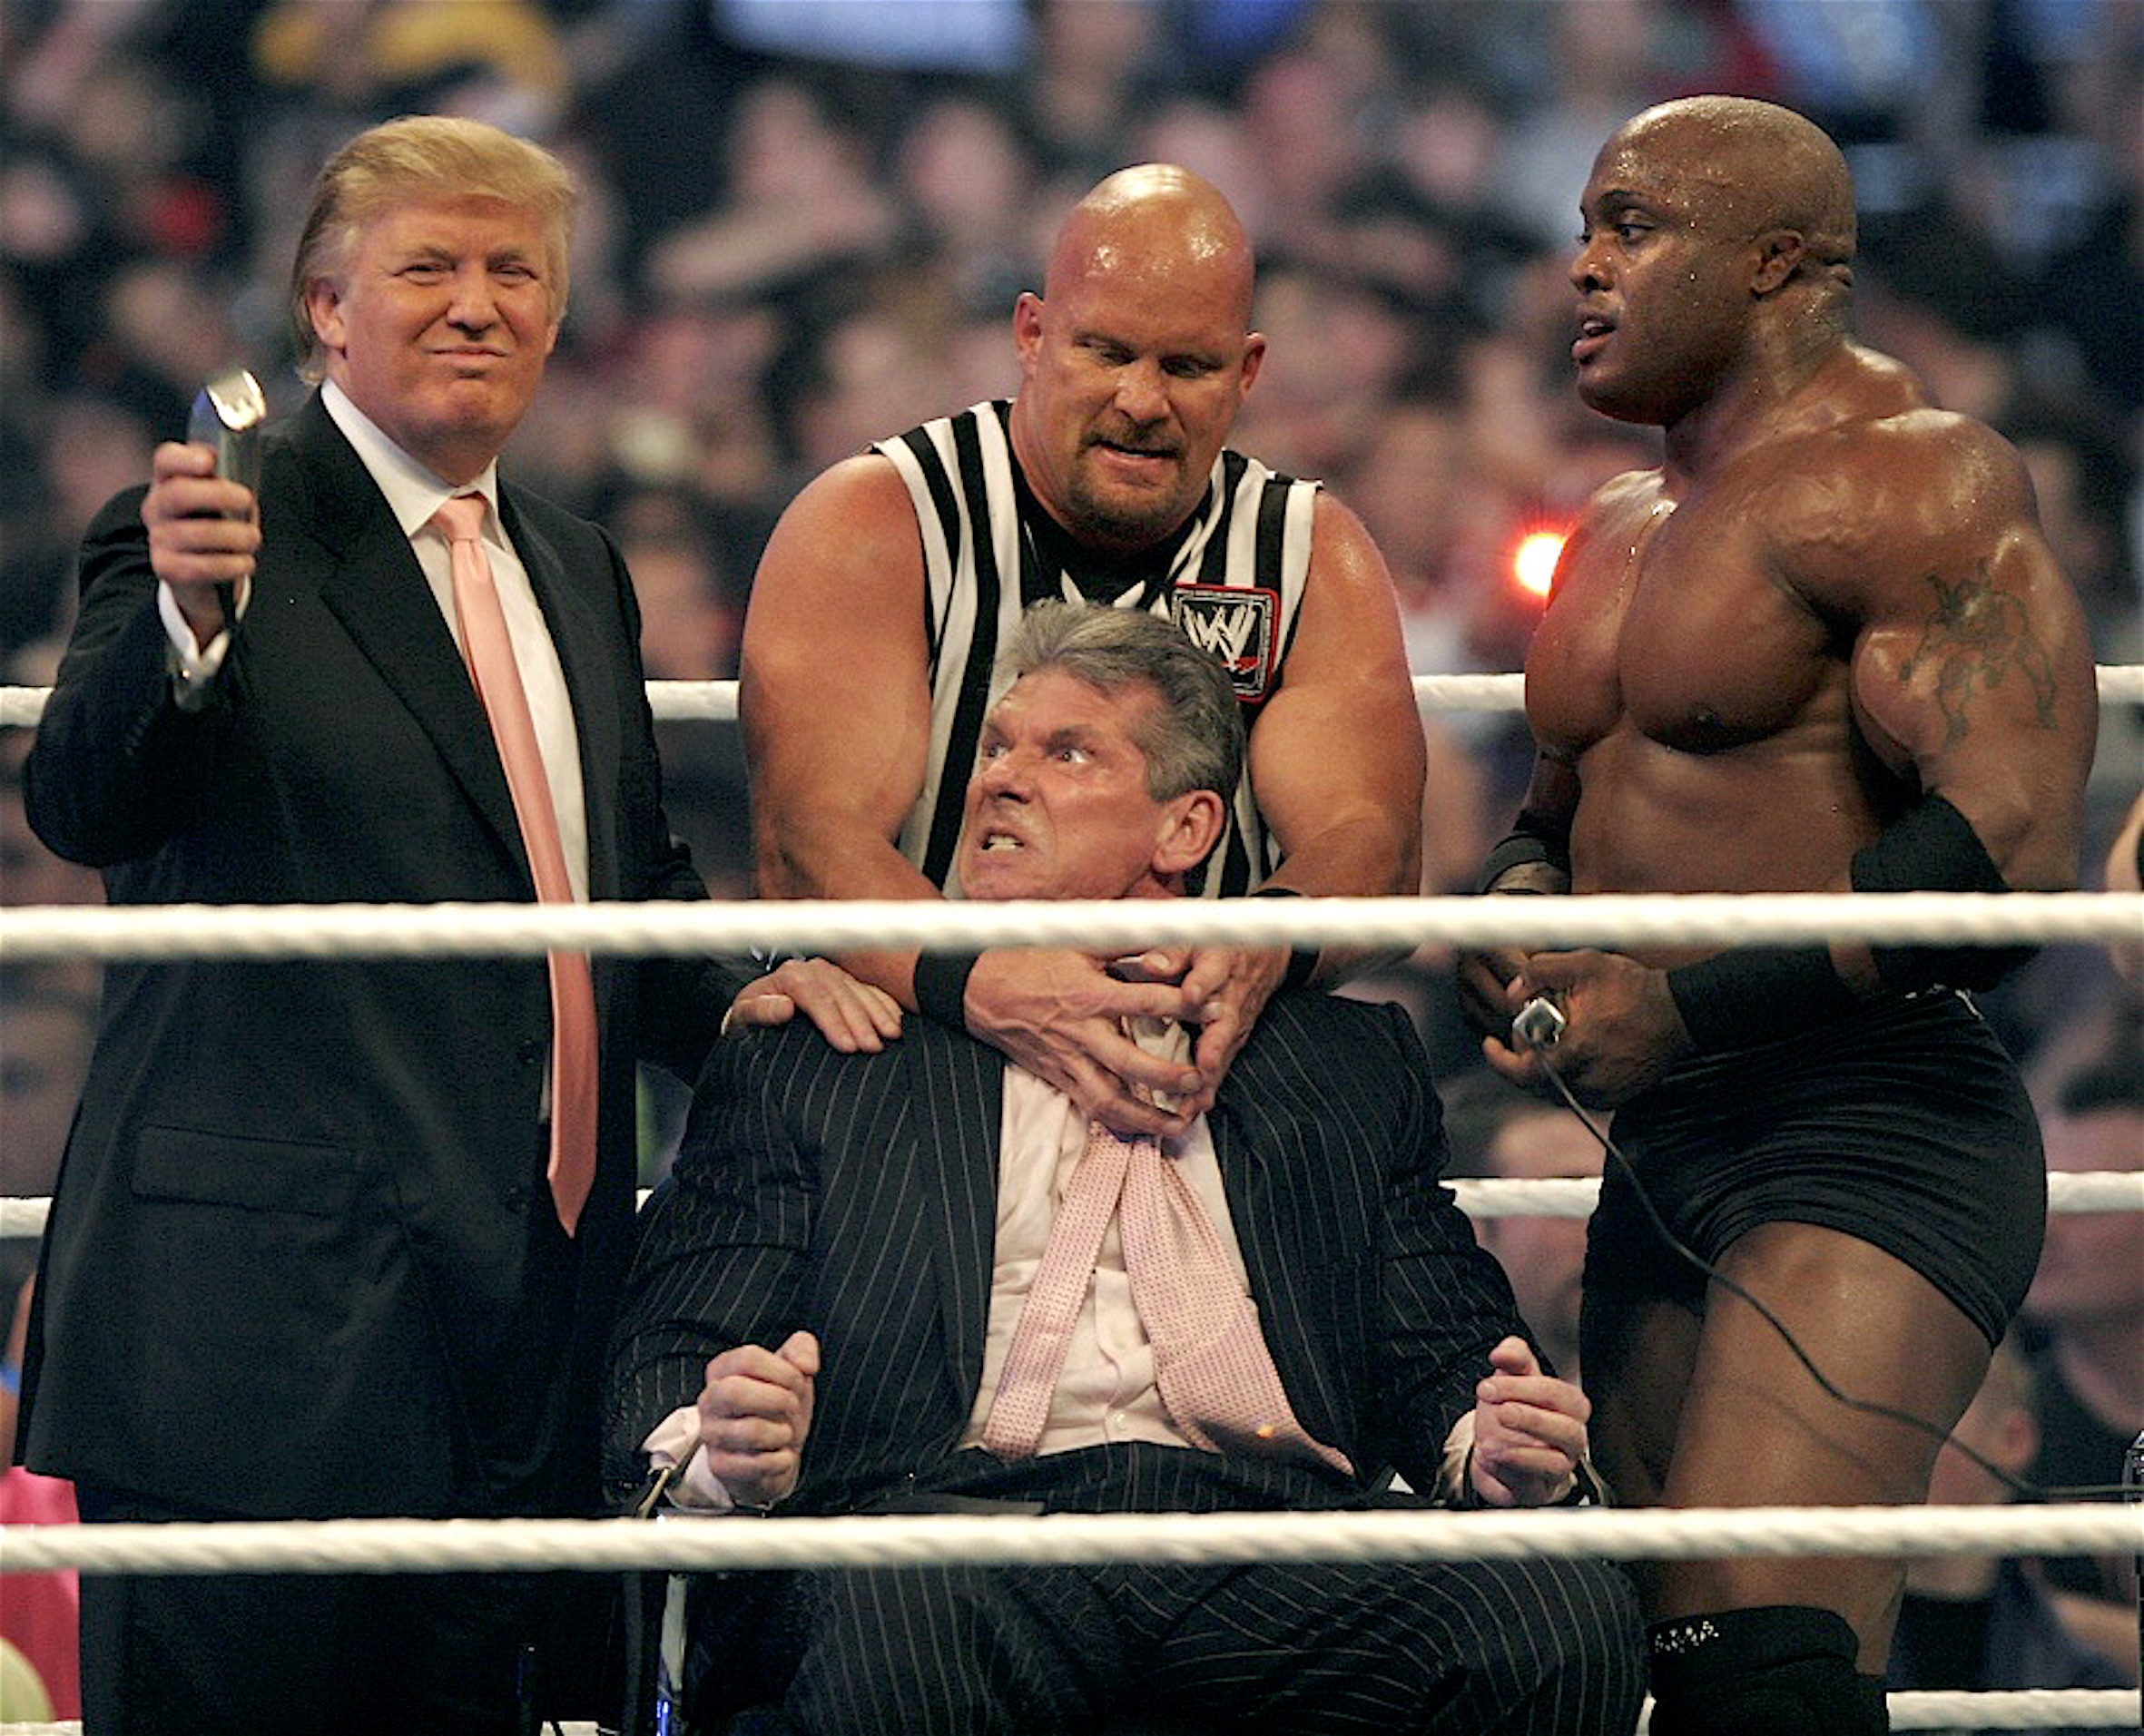 "DETROIT - APRIL 1: WWE chairman Vince McMahon gets held by Steve ""Stone Cold"" Austin while Donald Trump prepares to shave his head after losing a bet to Trump in the Battle of the Billionaires at the 2007 World Wrestling Entertainment's Wrestlemania April 1, 2007 at Ford Field in Detroit, Michigan. Umaga, who was representing McMahon in the match, lost to Bobby Lashley, who was representing Trump, so McMahon lost the bet. Lashley is standing on the right. The event drew more than 75,000 wrestling fans. (Photo by Bill Pugliano/Getty Images)"